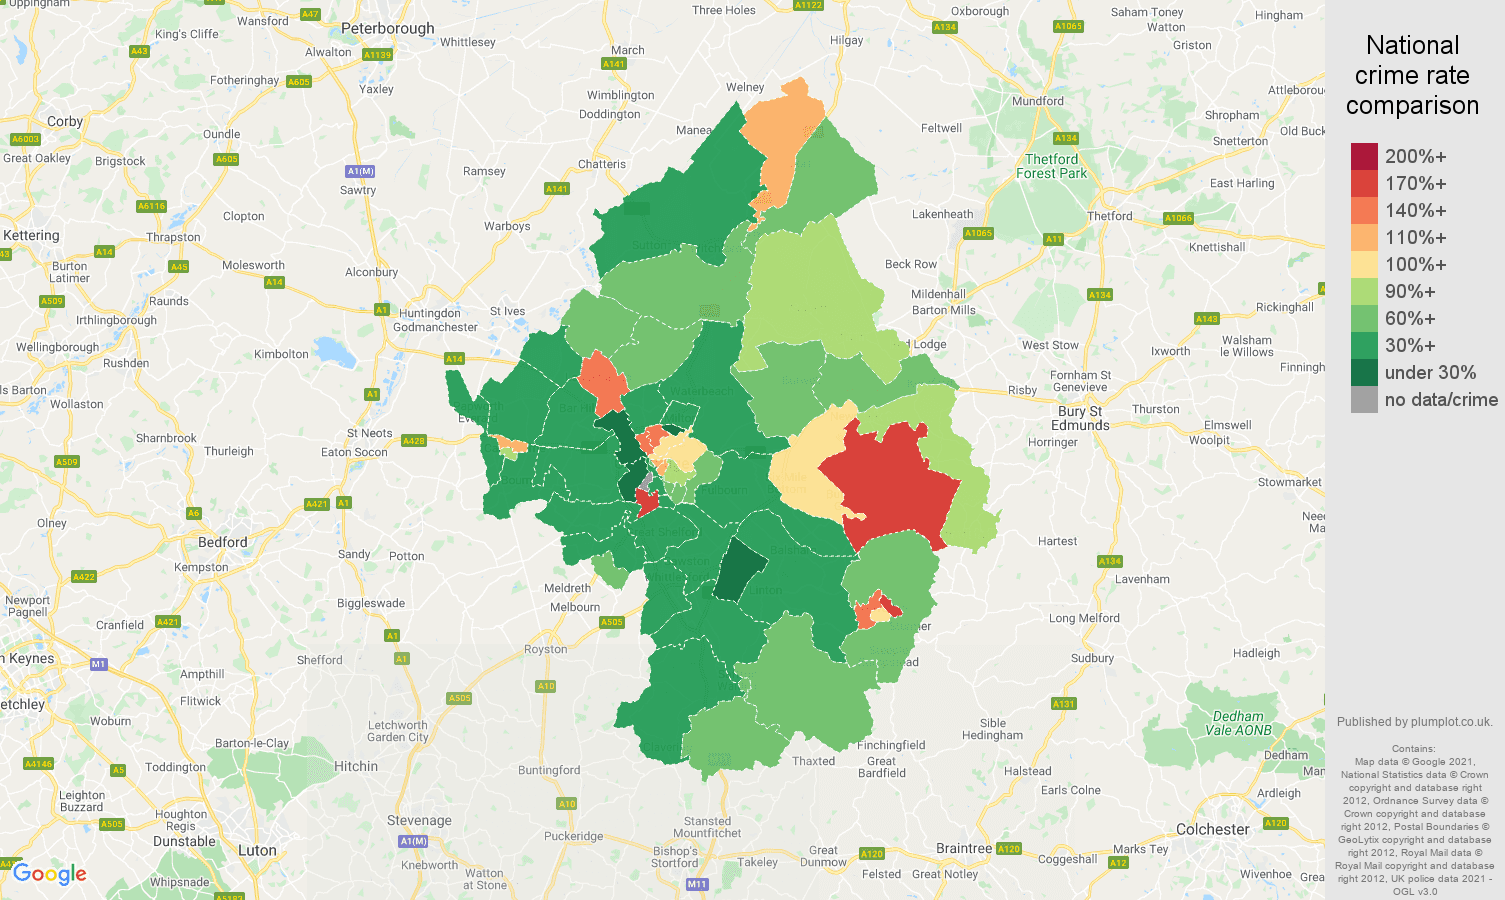 Cambridge violent crime rate comparison map